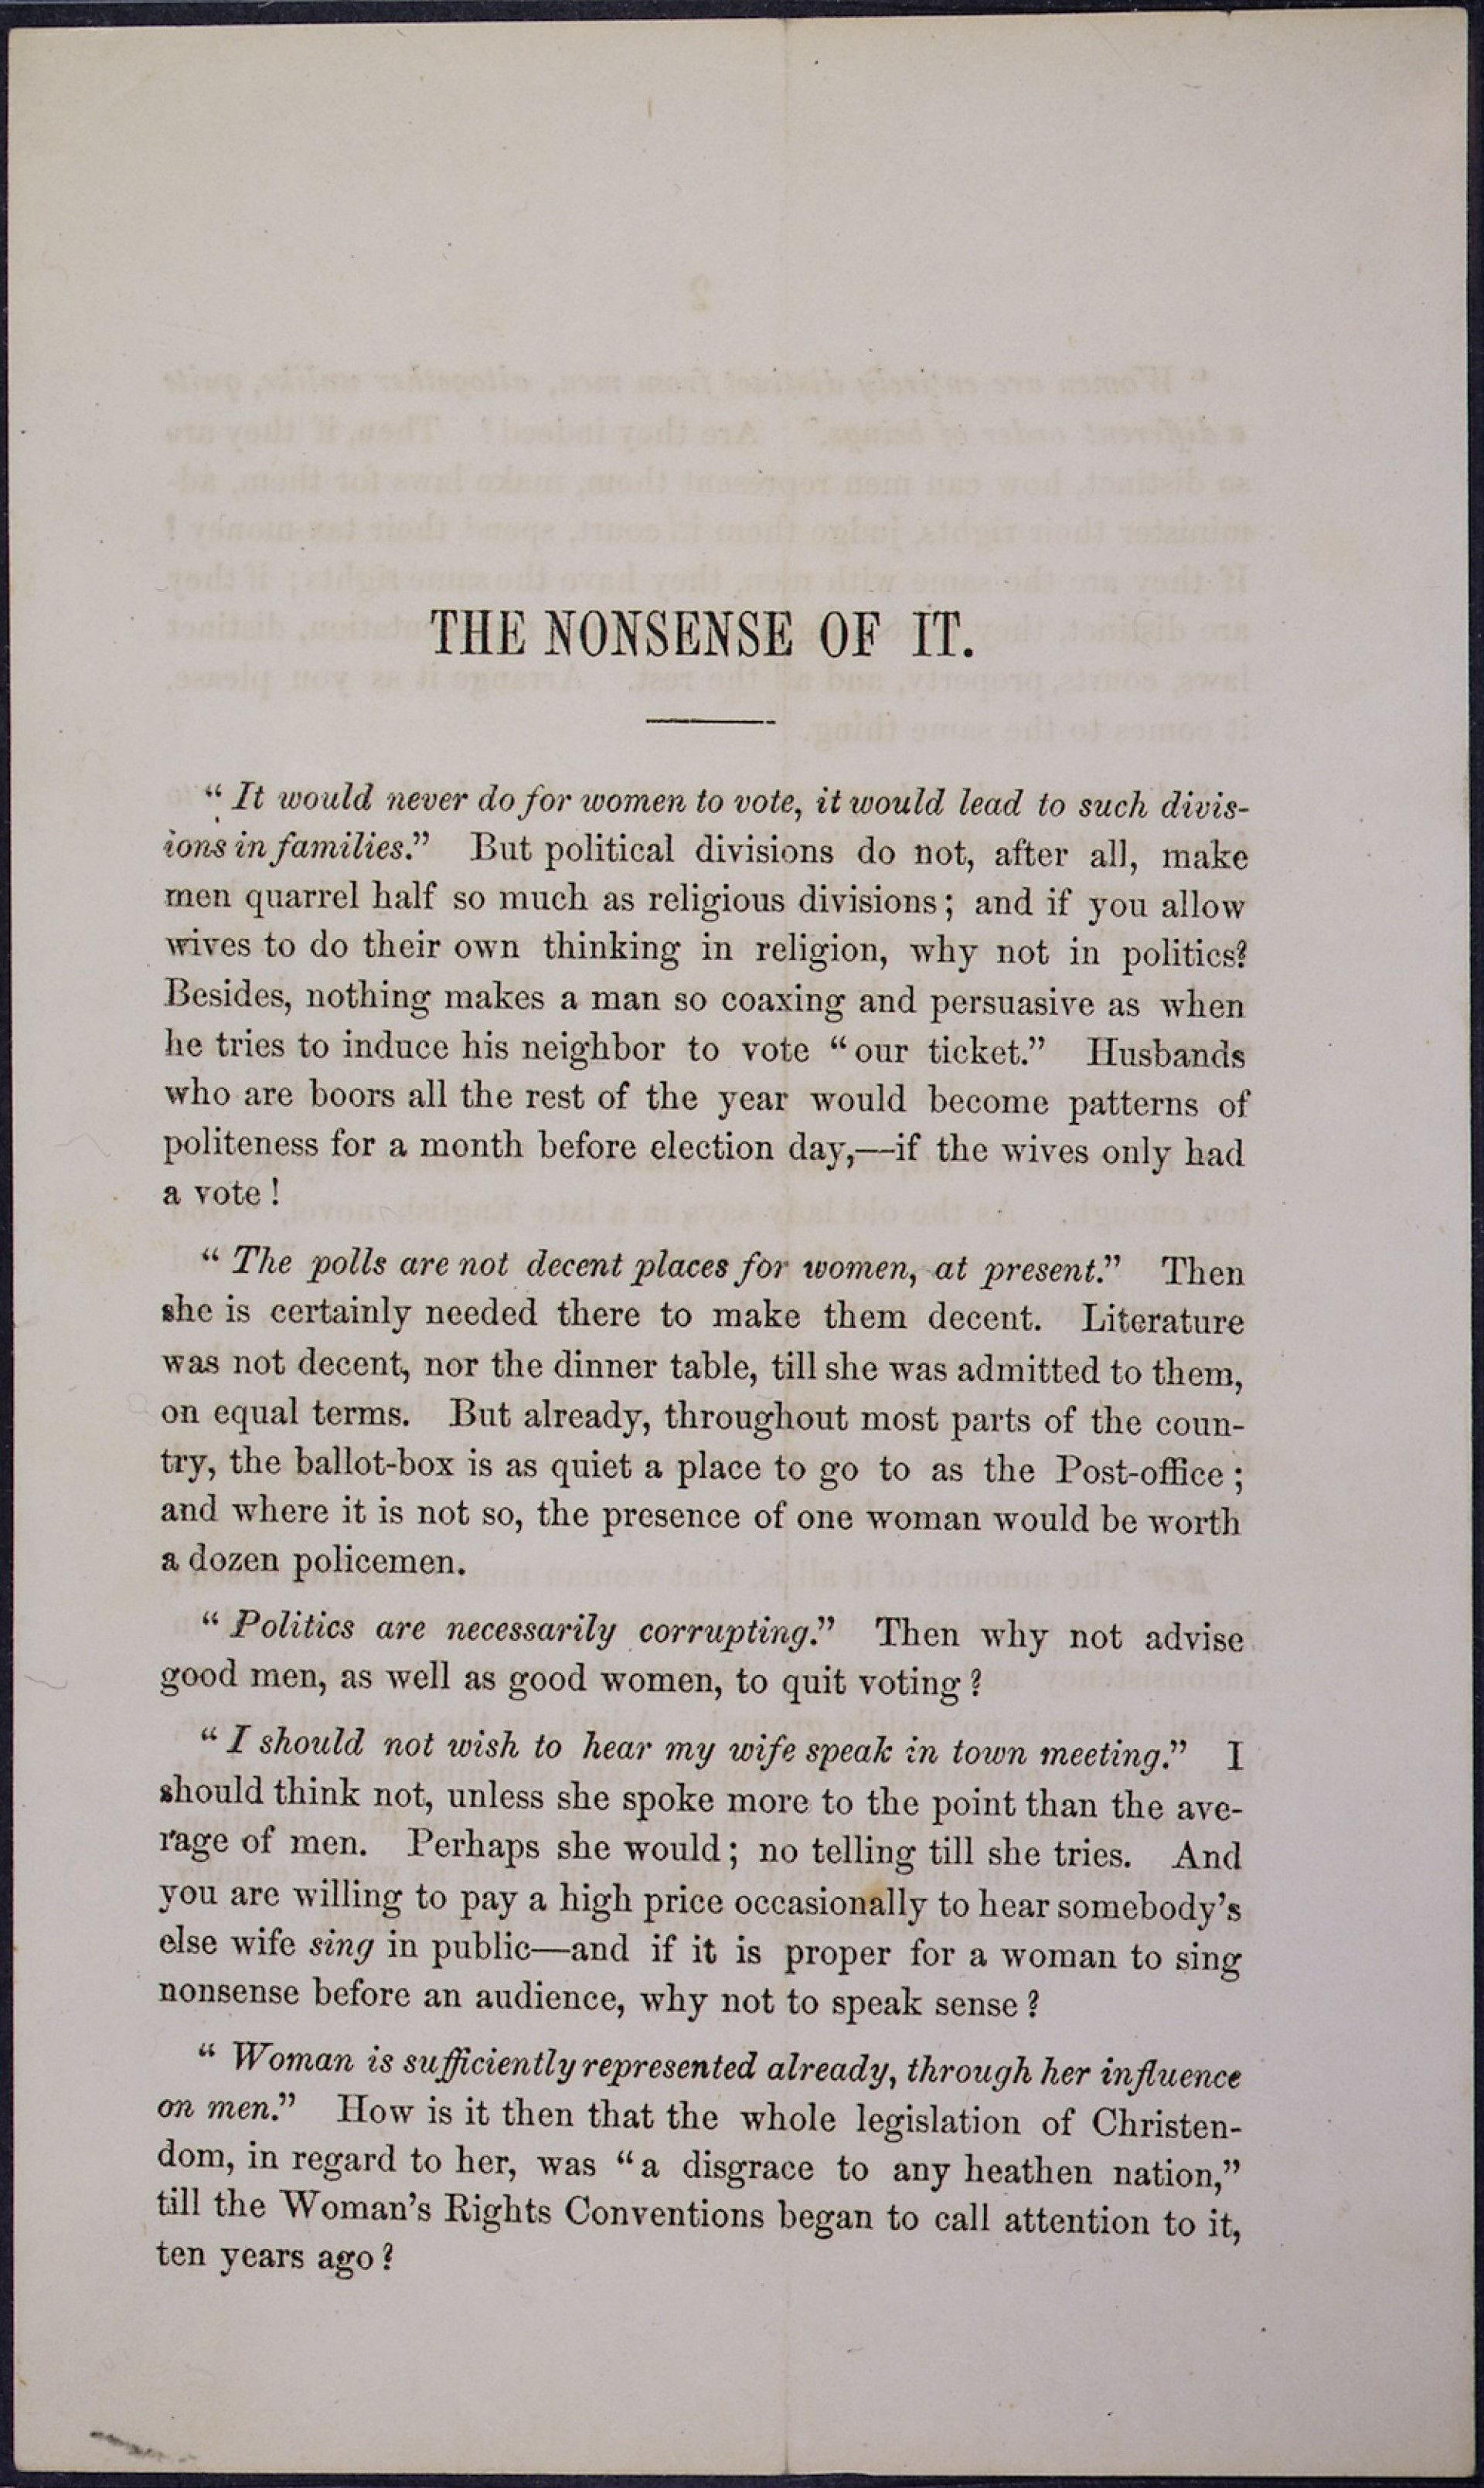 005 Why Is It Important To Vote Essay Contest Suffragepamphlet1final Crop Original Top 1920